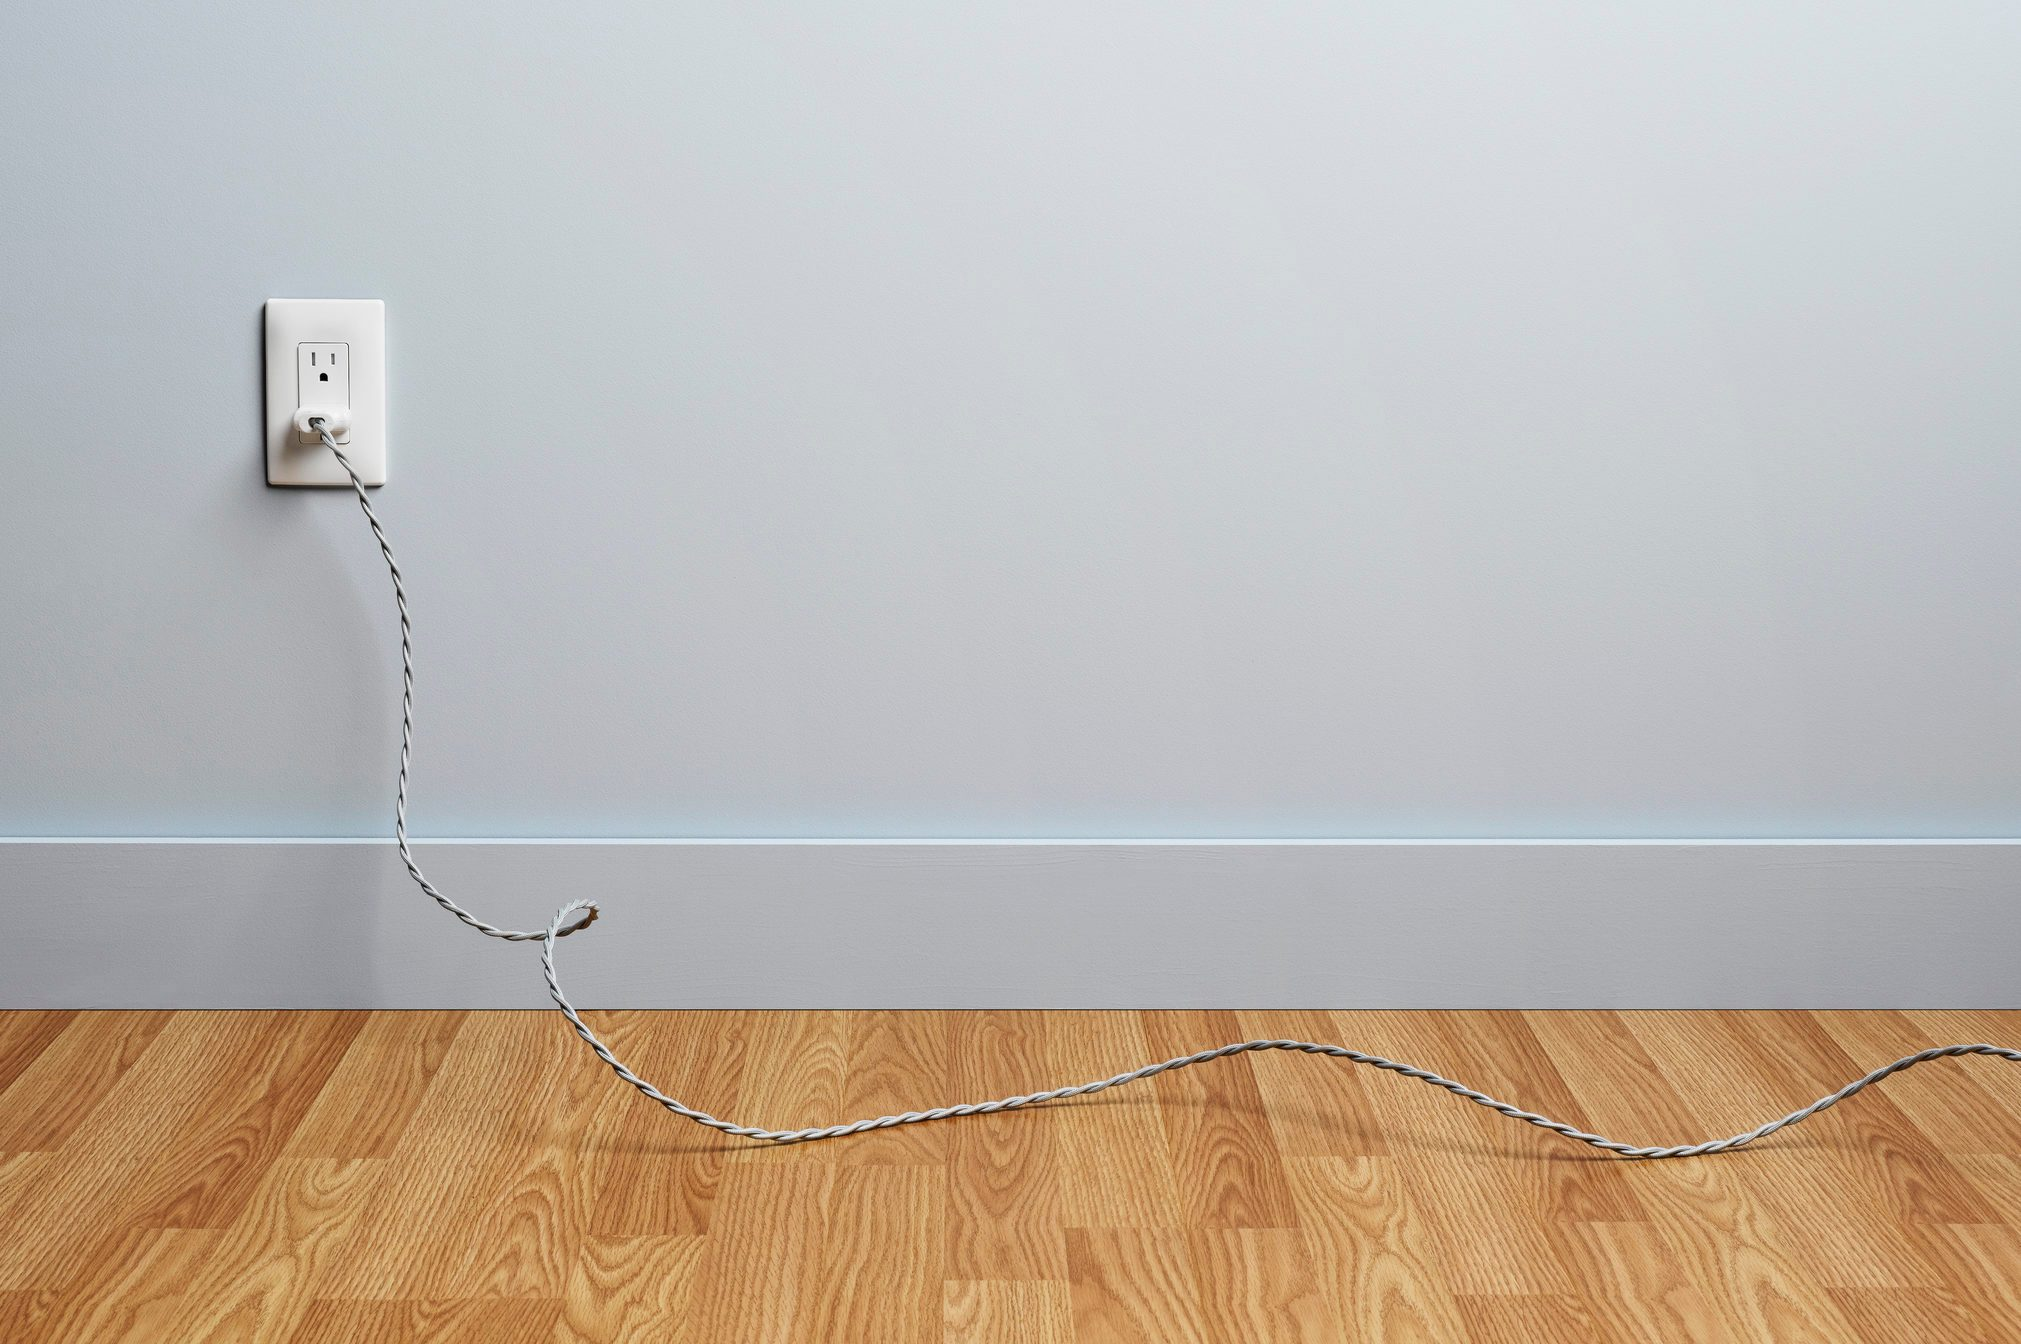 Cord Plugged into Wall Outlet